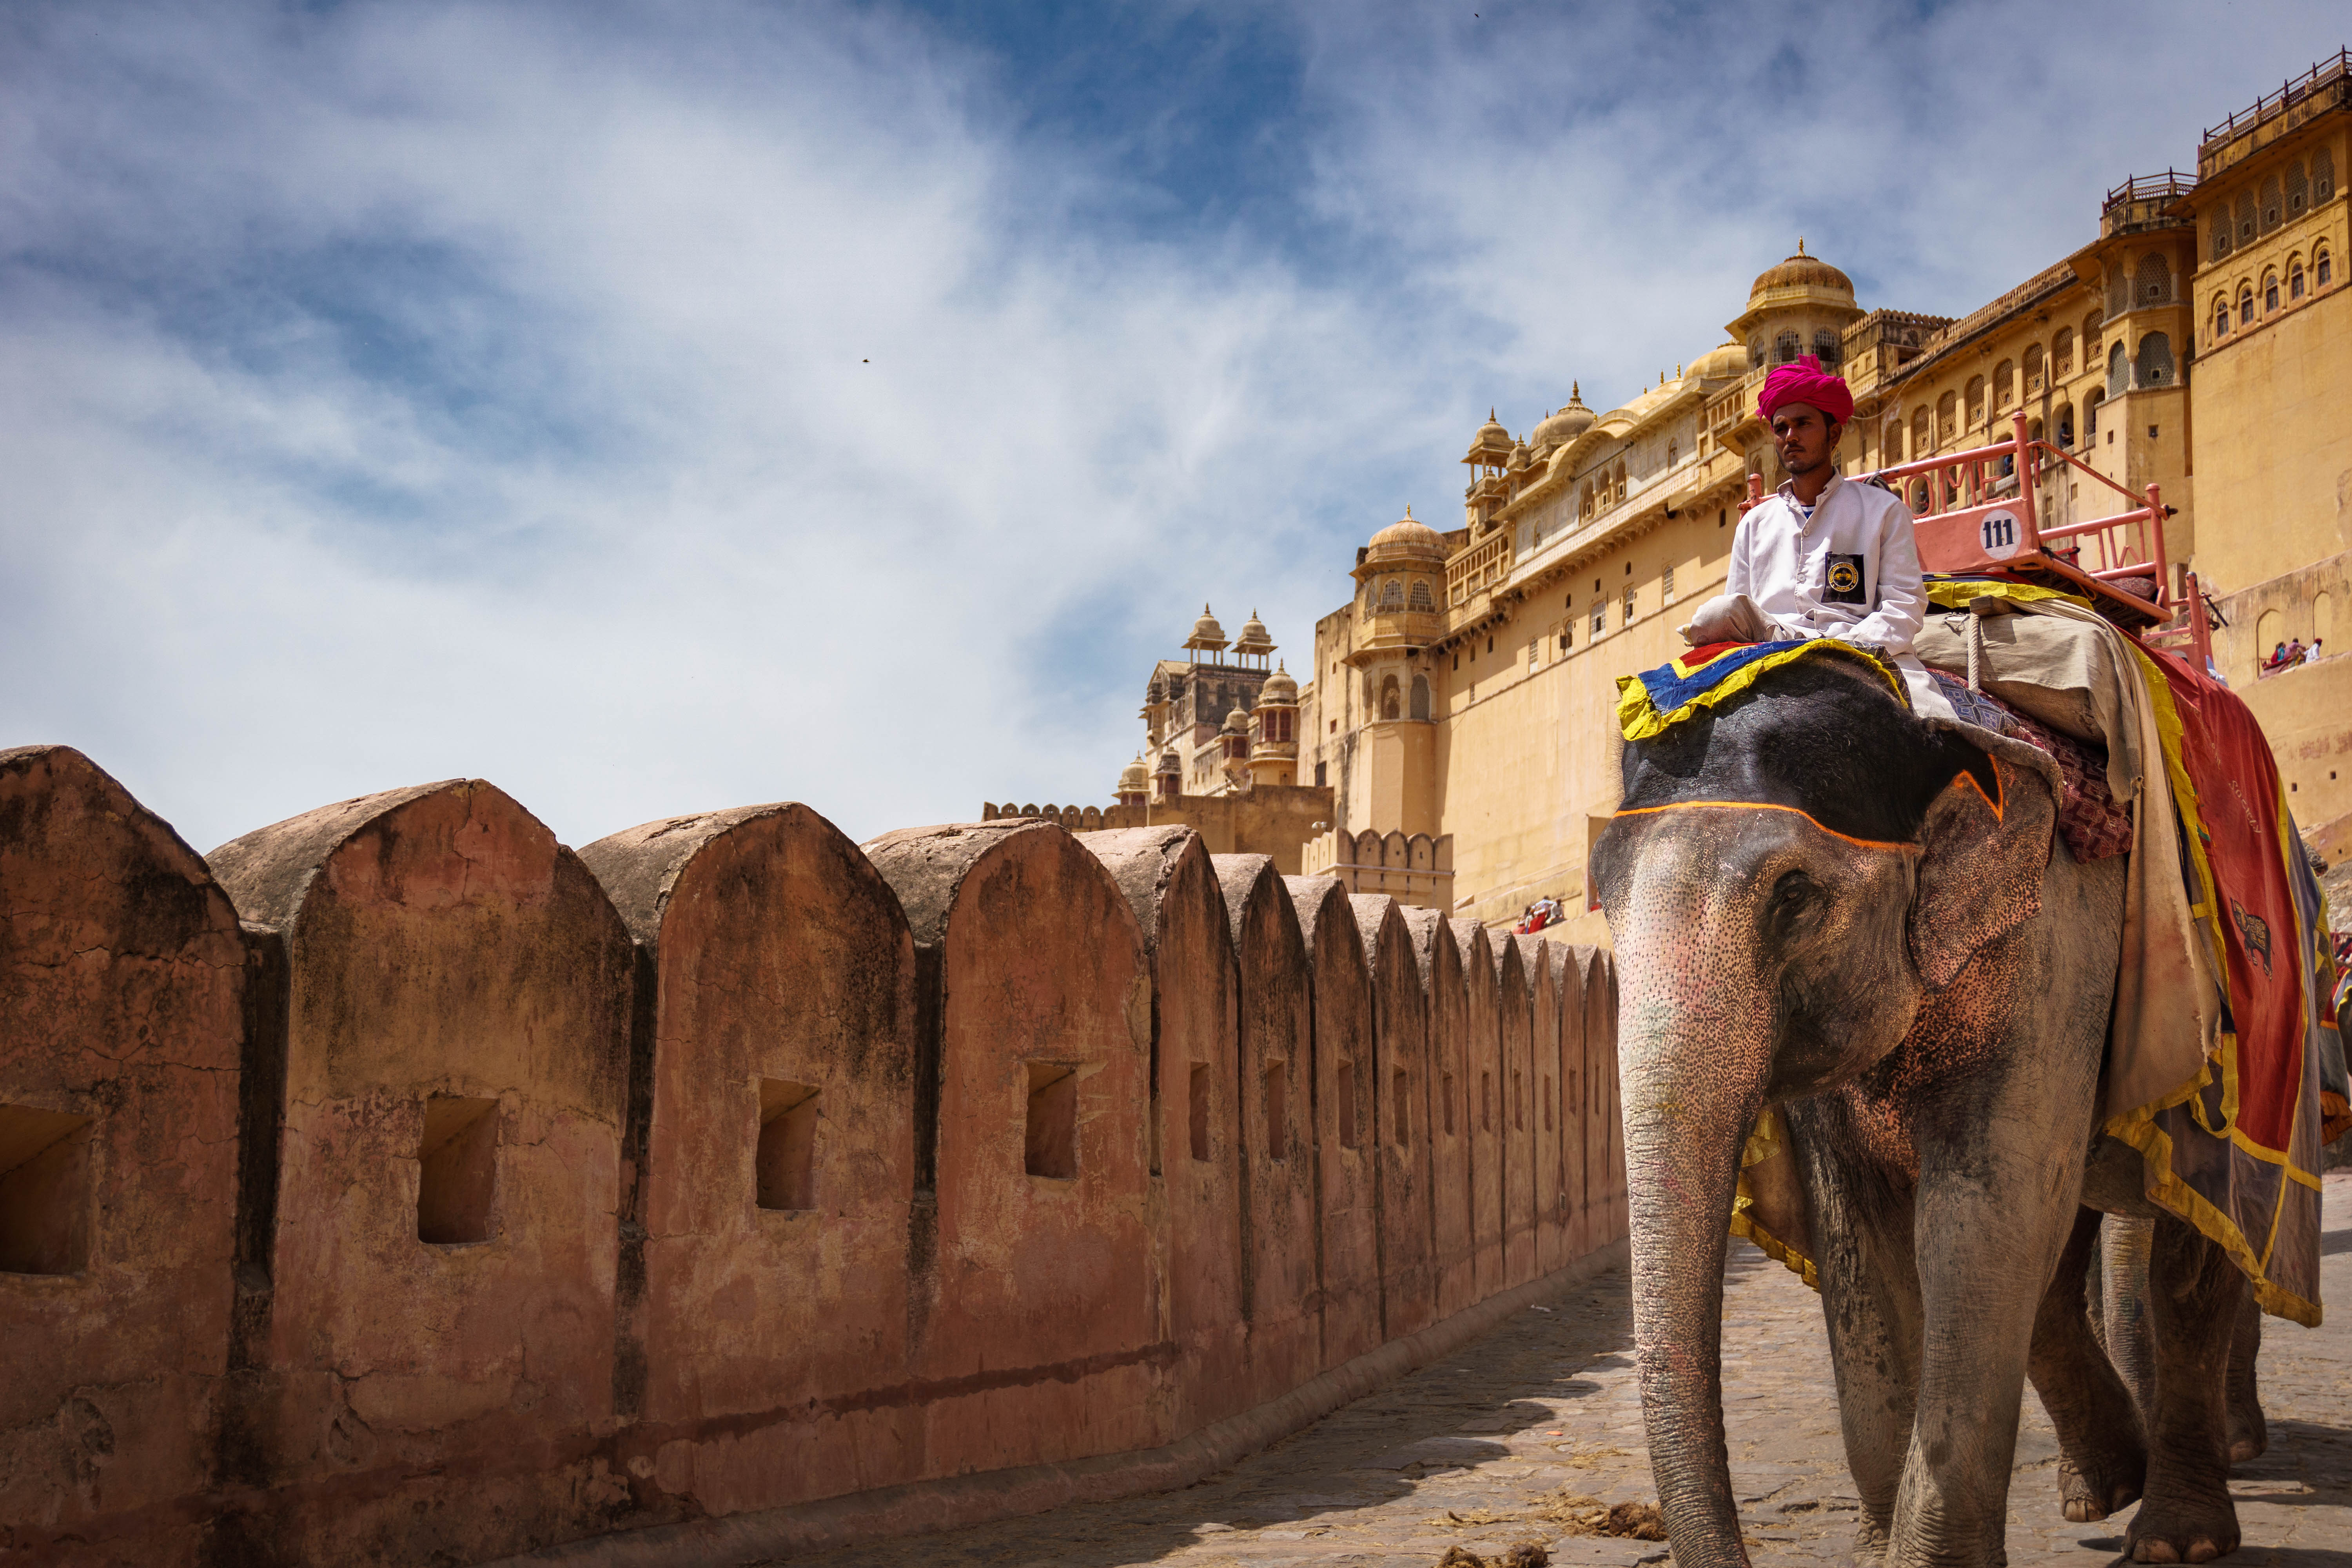 Elephant and Mahout, Amber Fort, Jaipur